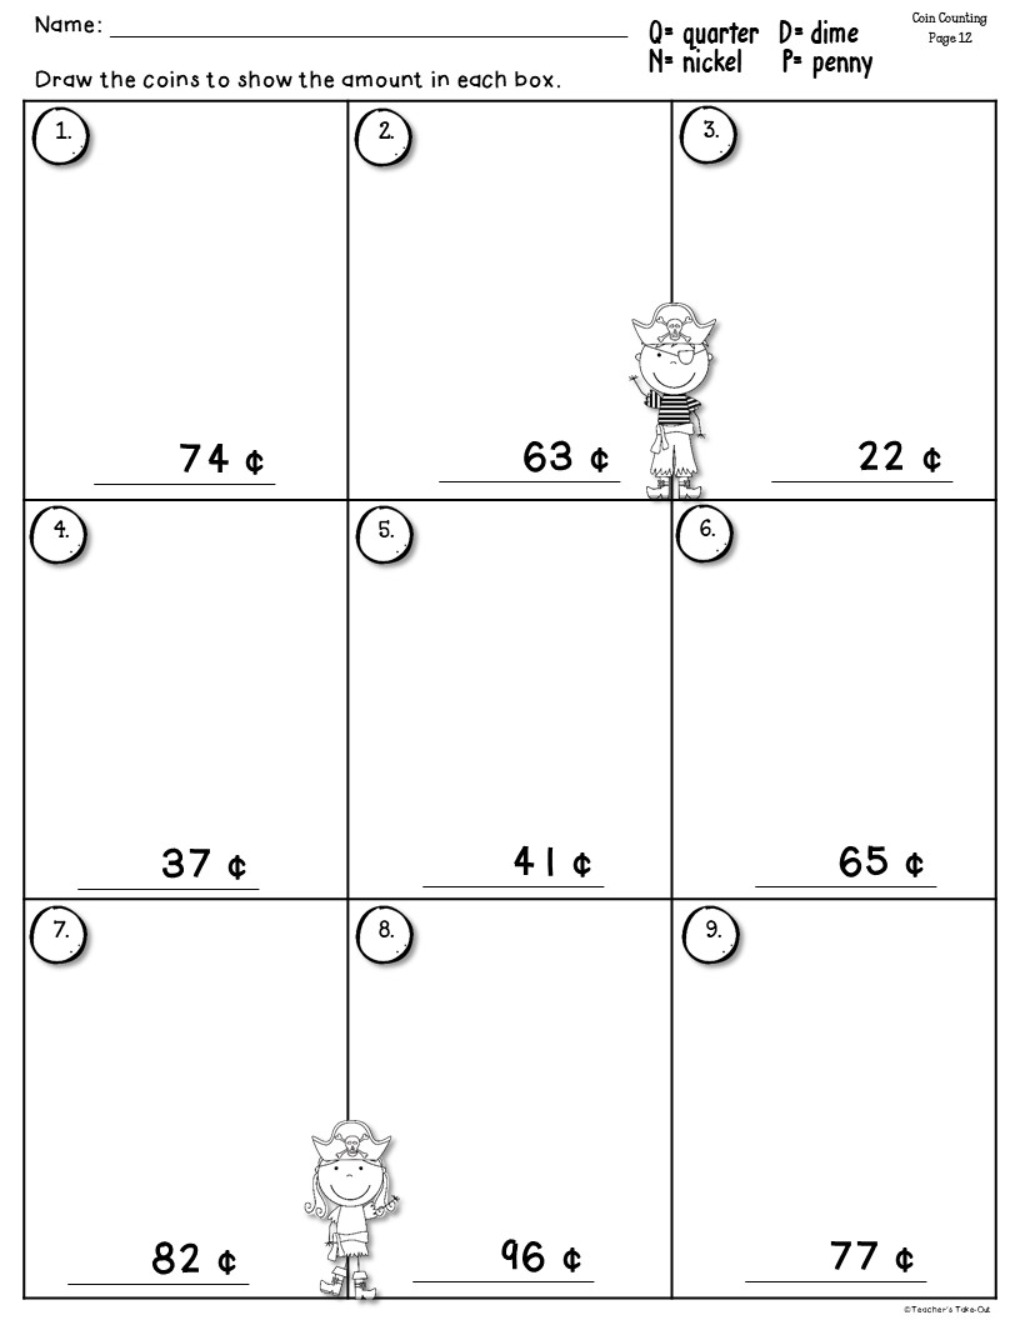 Coin Counting Worksheets